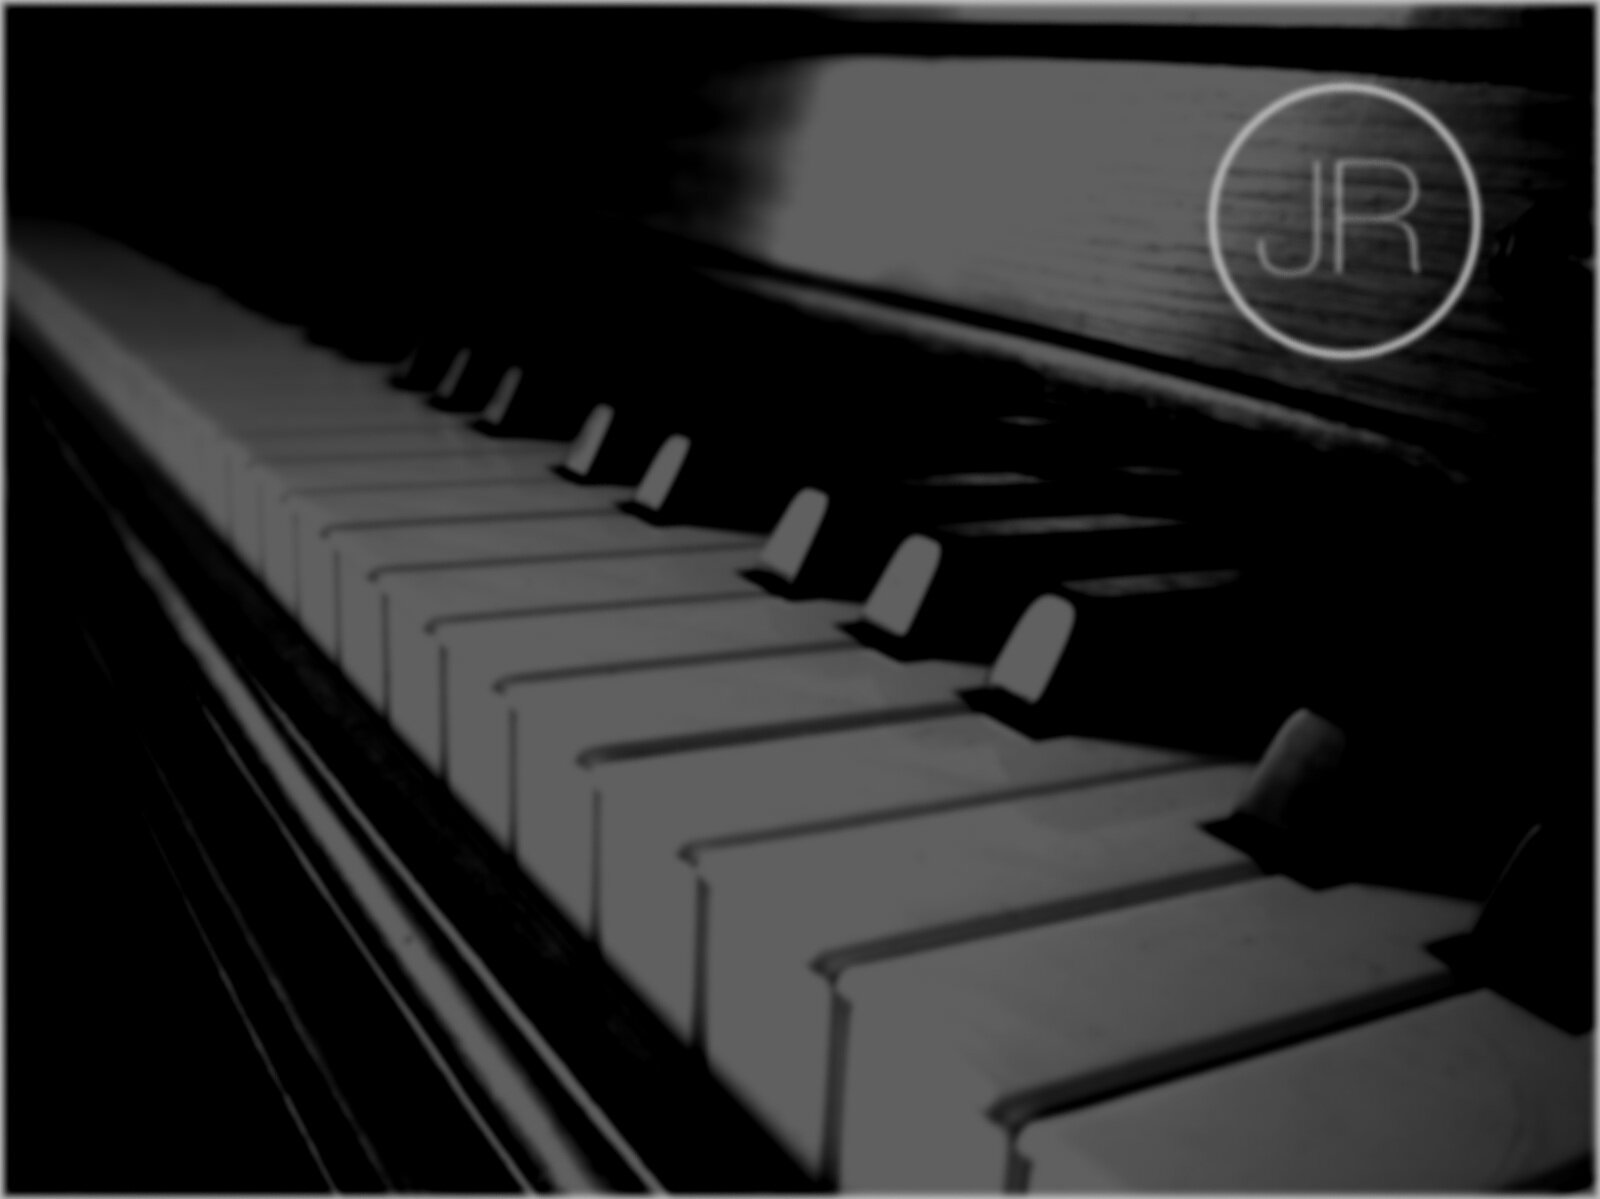 Custom Piano Tracks - ORDER CUSTOMIZED PIANO BACKGROUND TRACKS, PERFECTLY FITTED FOR YOUR SINGING VOICE.Pricing:For ONE track of 16-32 bars: $50For ONE full song, OR TWO TRACKS OF 16-32 BARS: $100Package of three full SONGS: $250